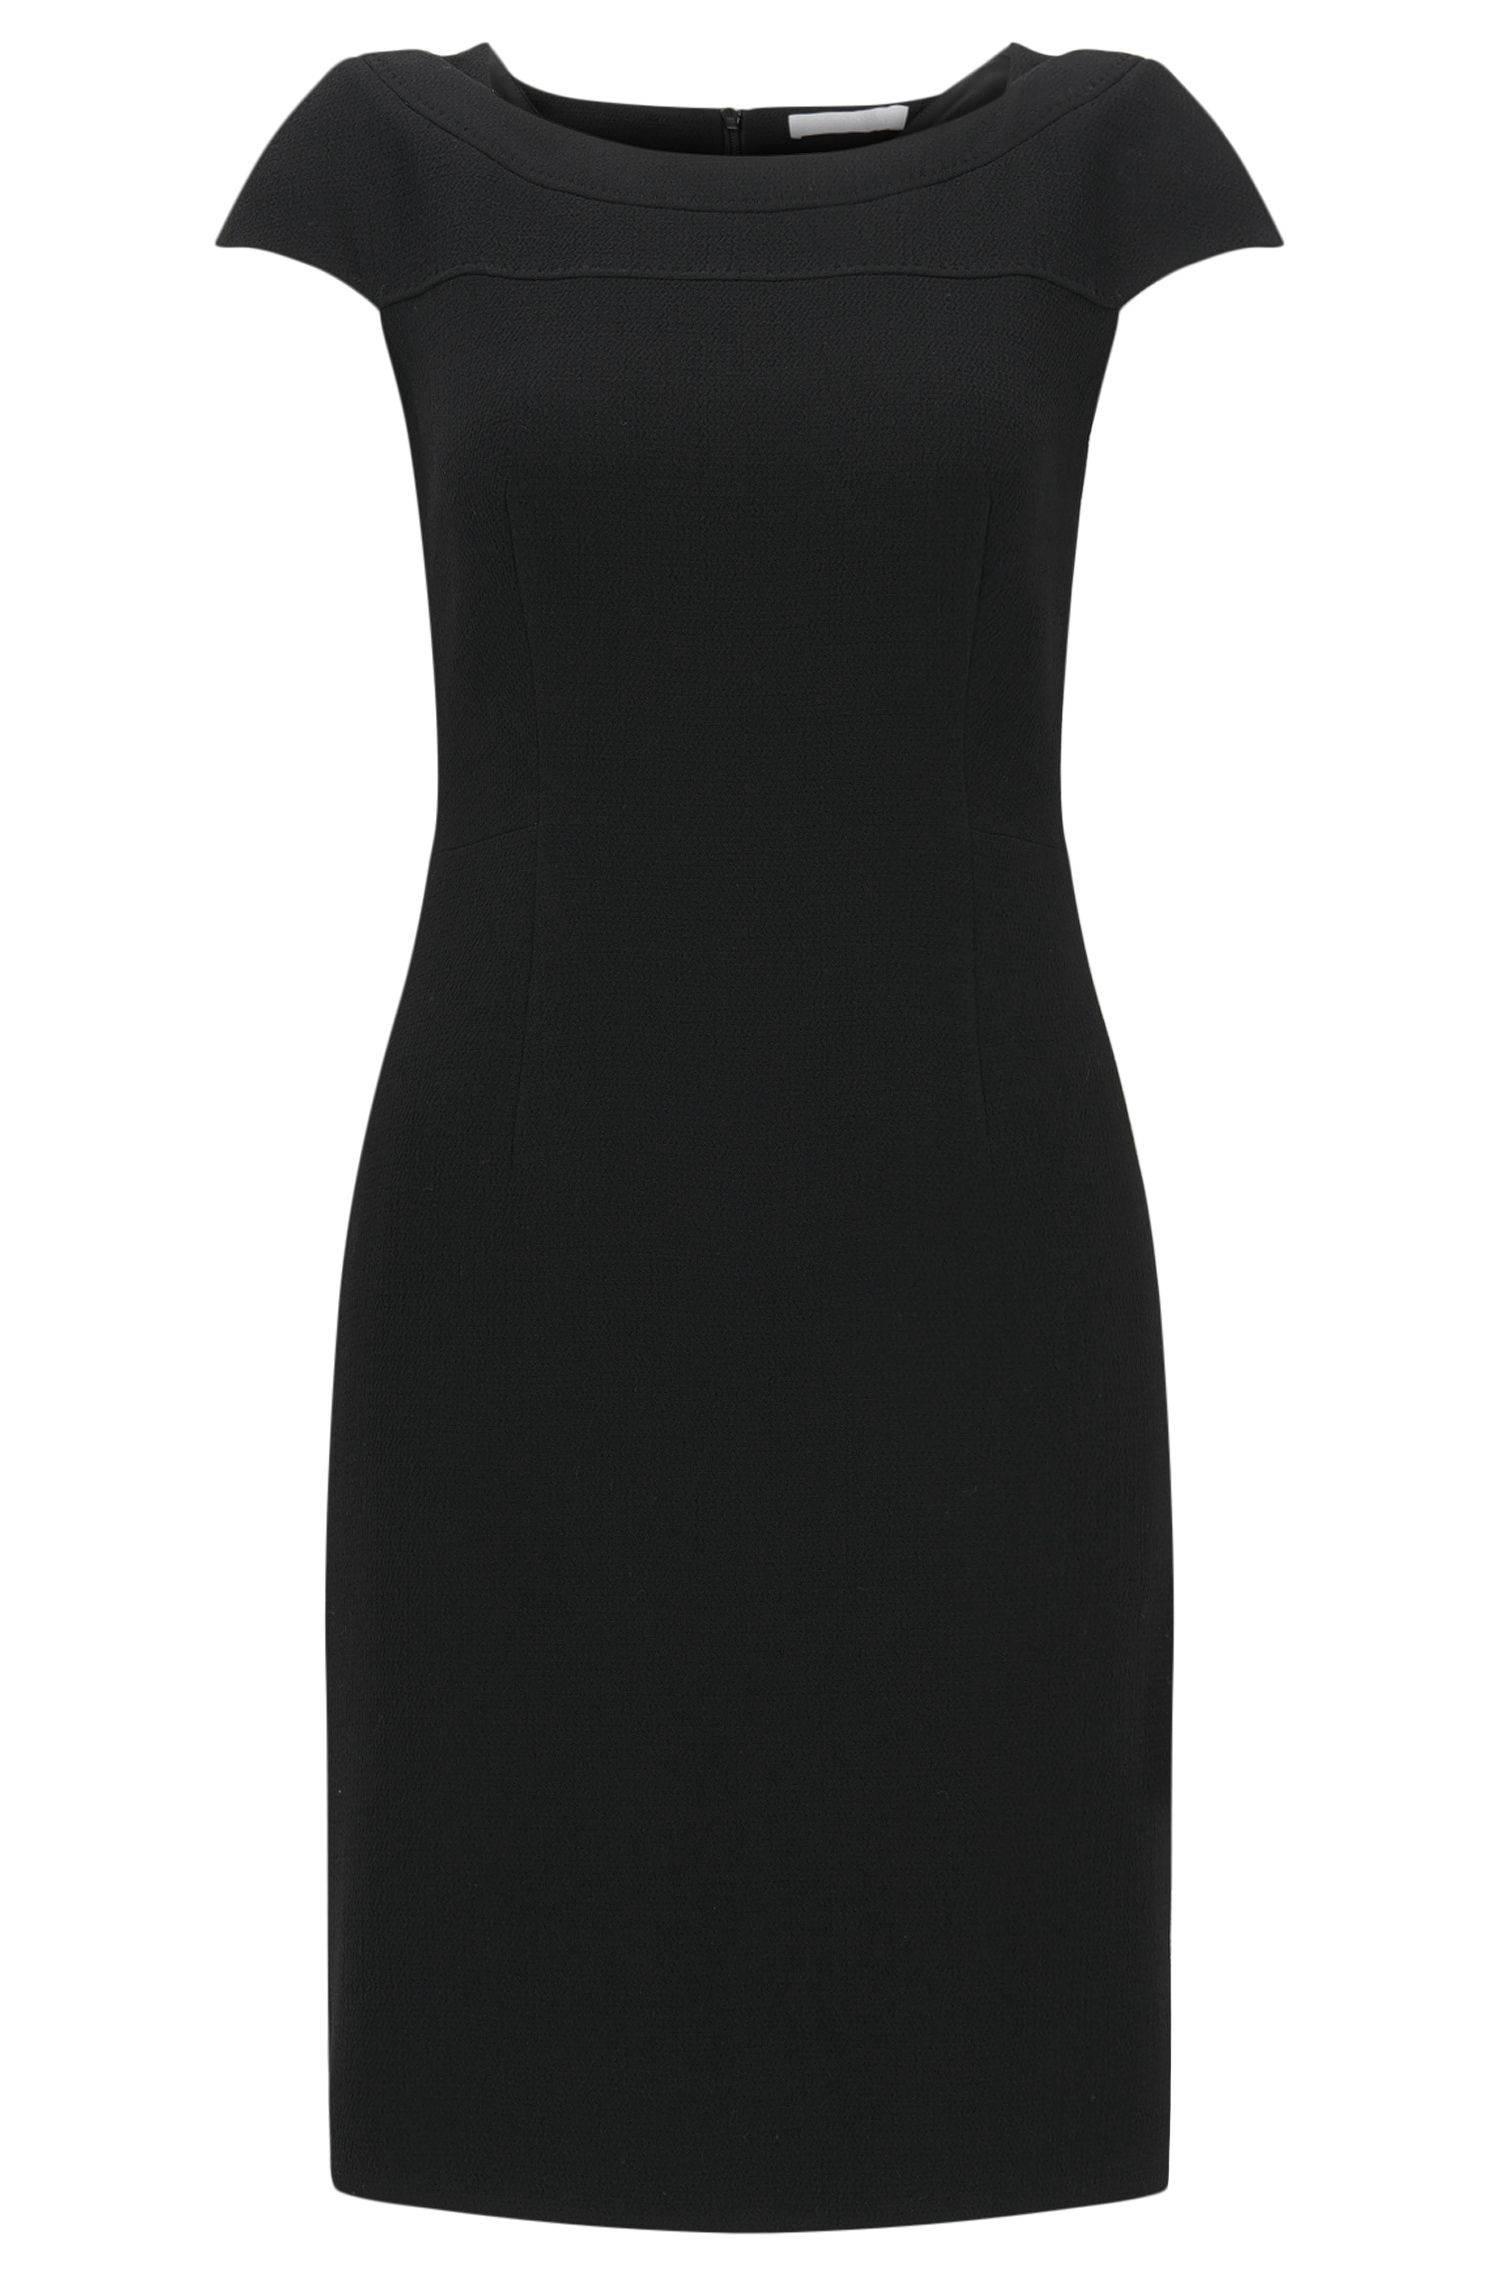 Virgin Wool Blend Sheath Dress | Dalikana